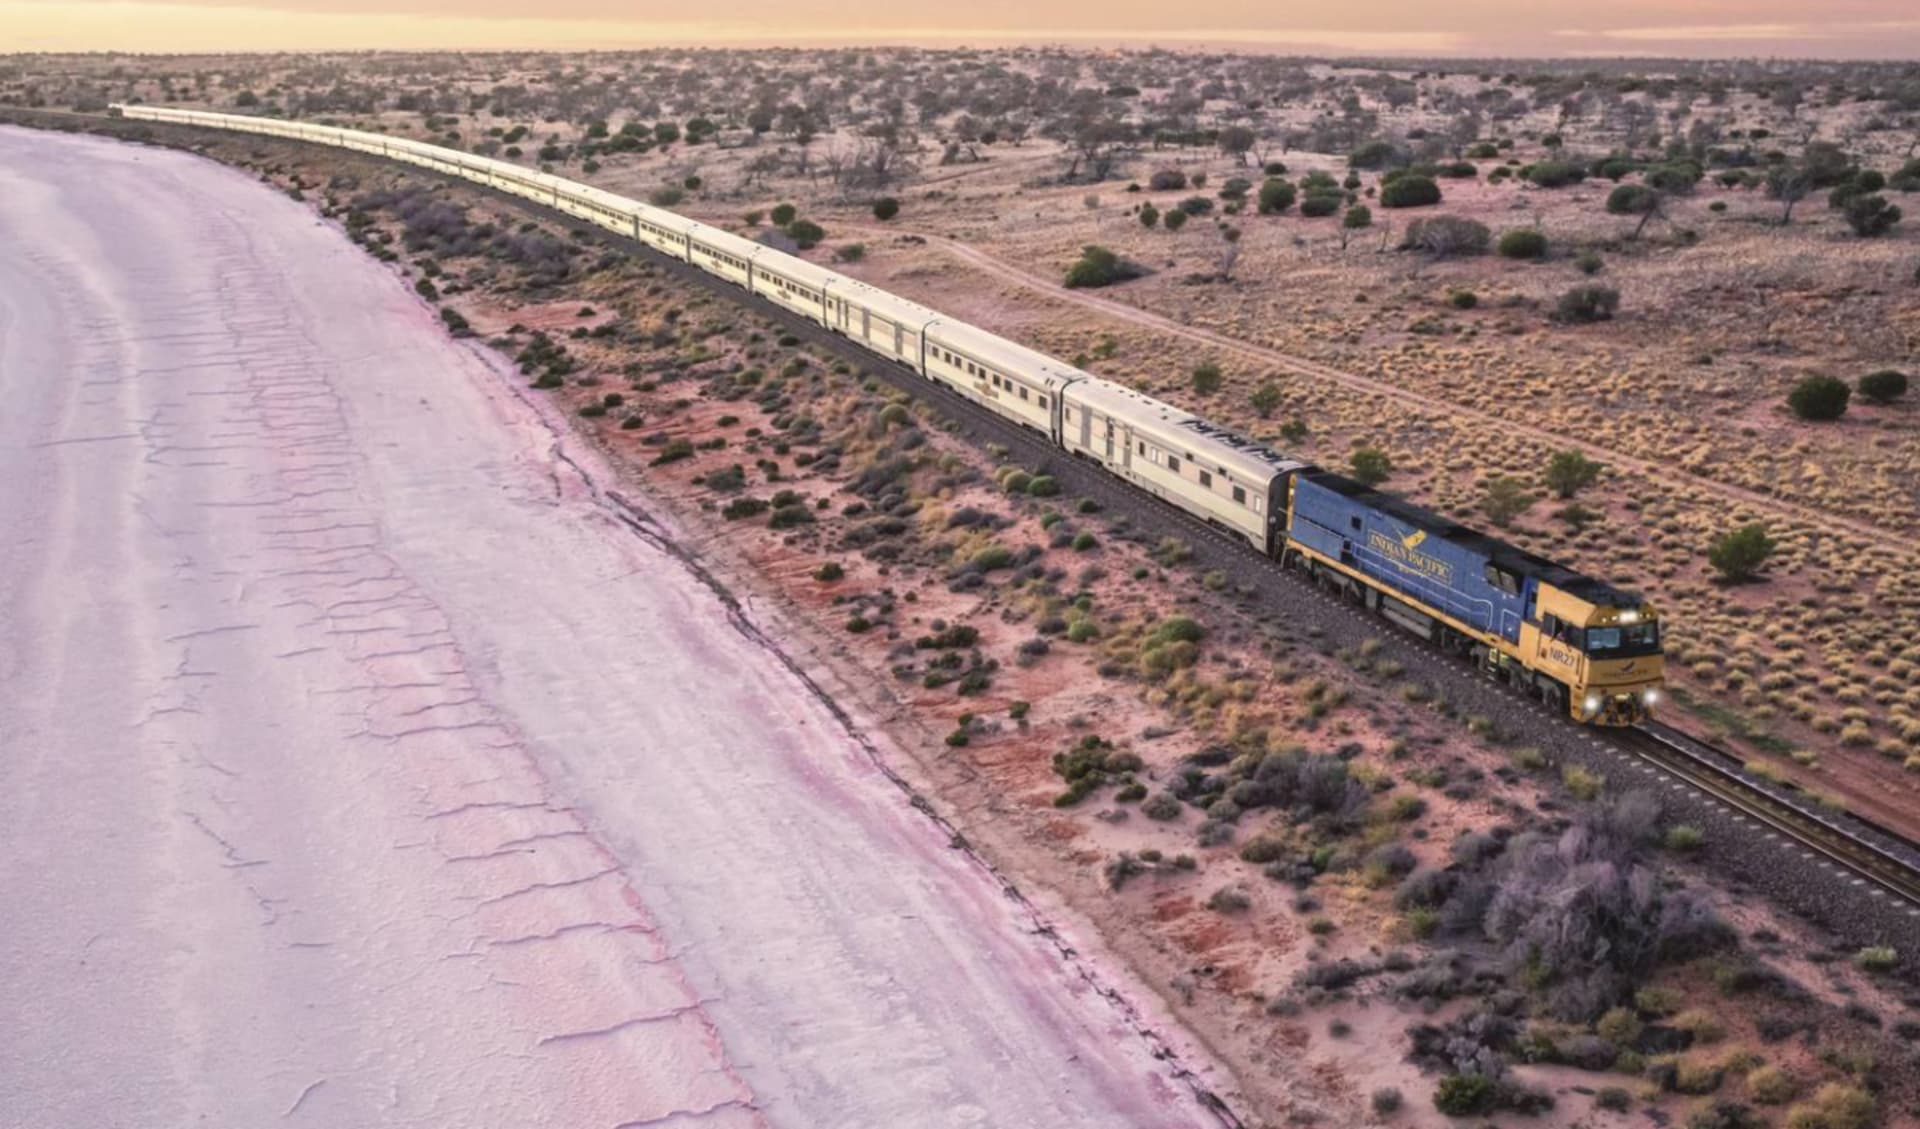 Indian Pacific von Adelaide nach Perth: Australien - Bahnreisen - Indian Pacific Salzsee Lake Hart bei Woomera  2018